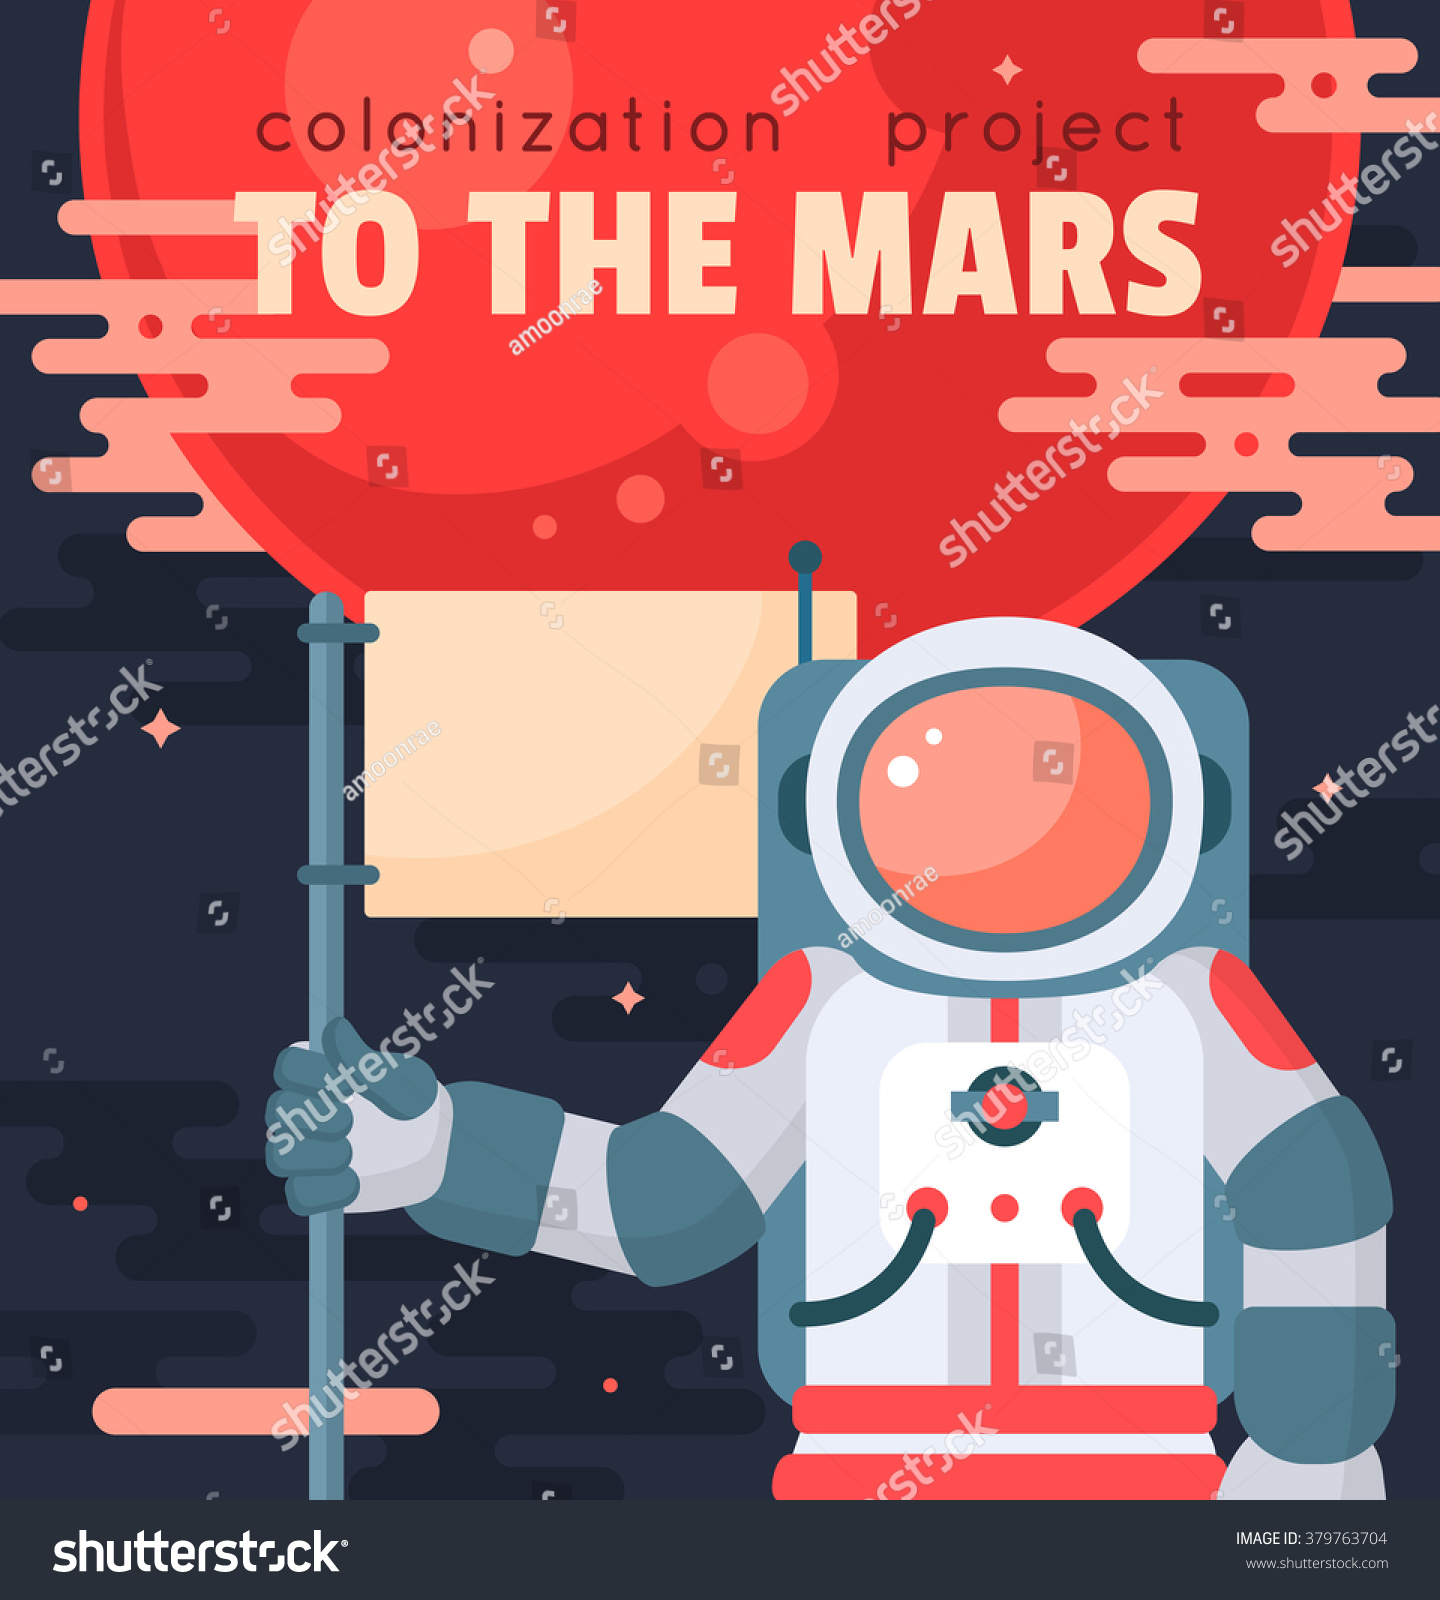 Mars colonization project poster with astronaut holding for Outer space poster design